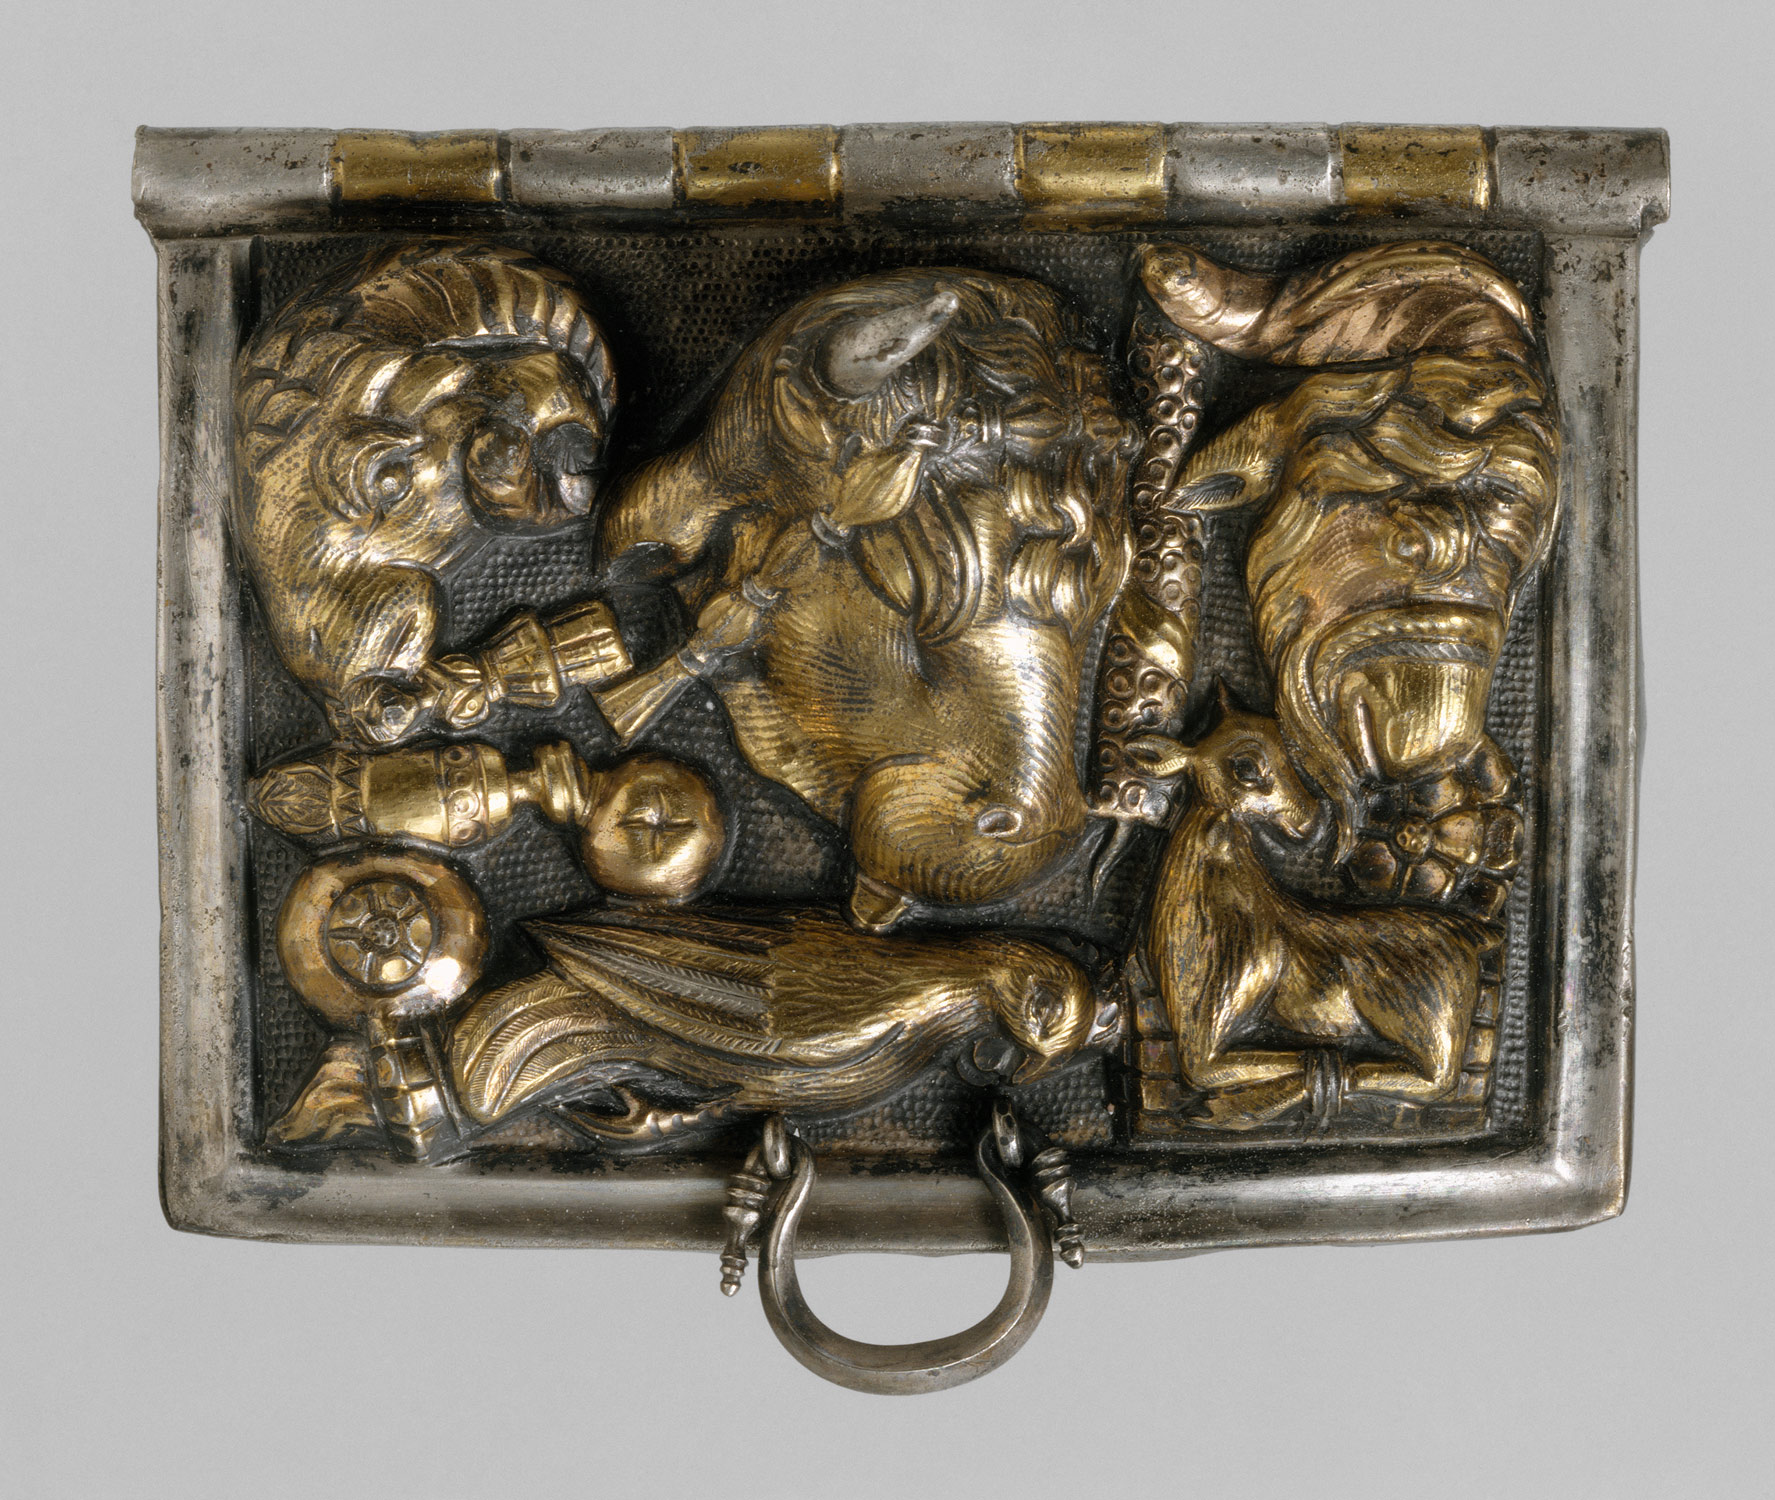 Gilt-silver ceremonial box lid